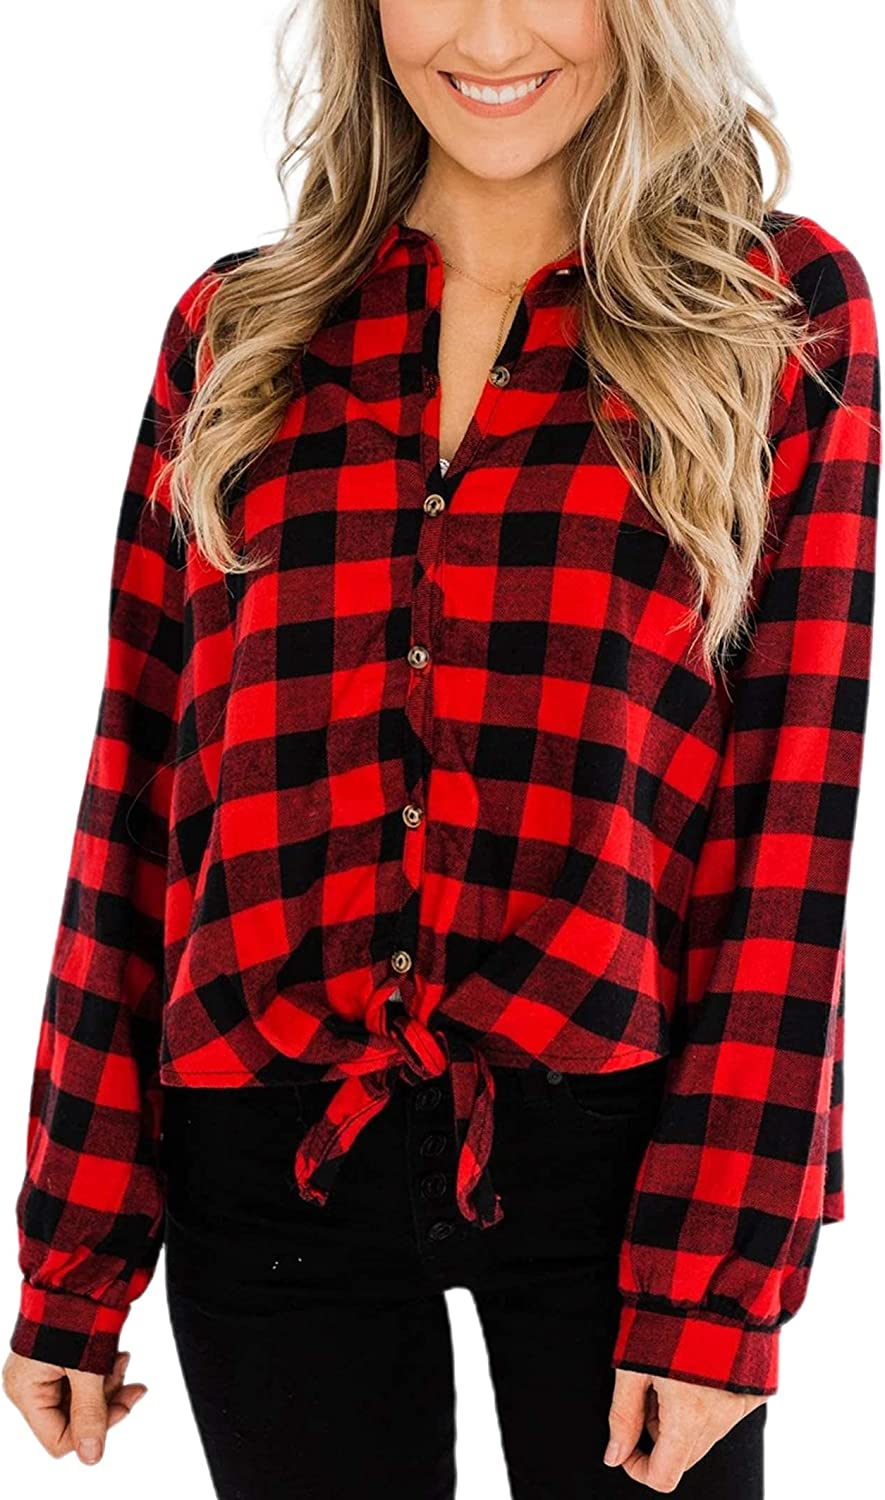 Remidoo Women's Long Sleeve Tie Knot Collared Button Down Plaid Flannel Shirt